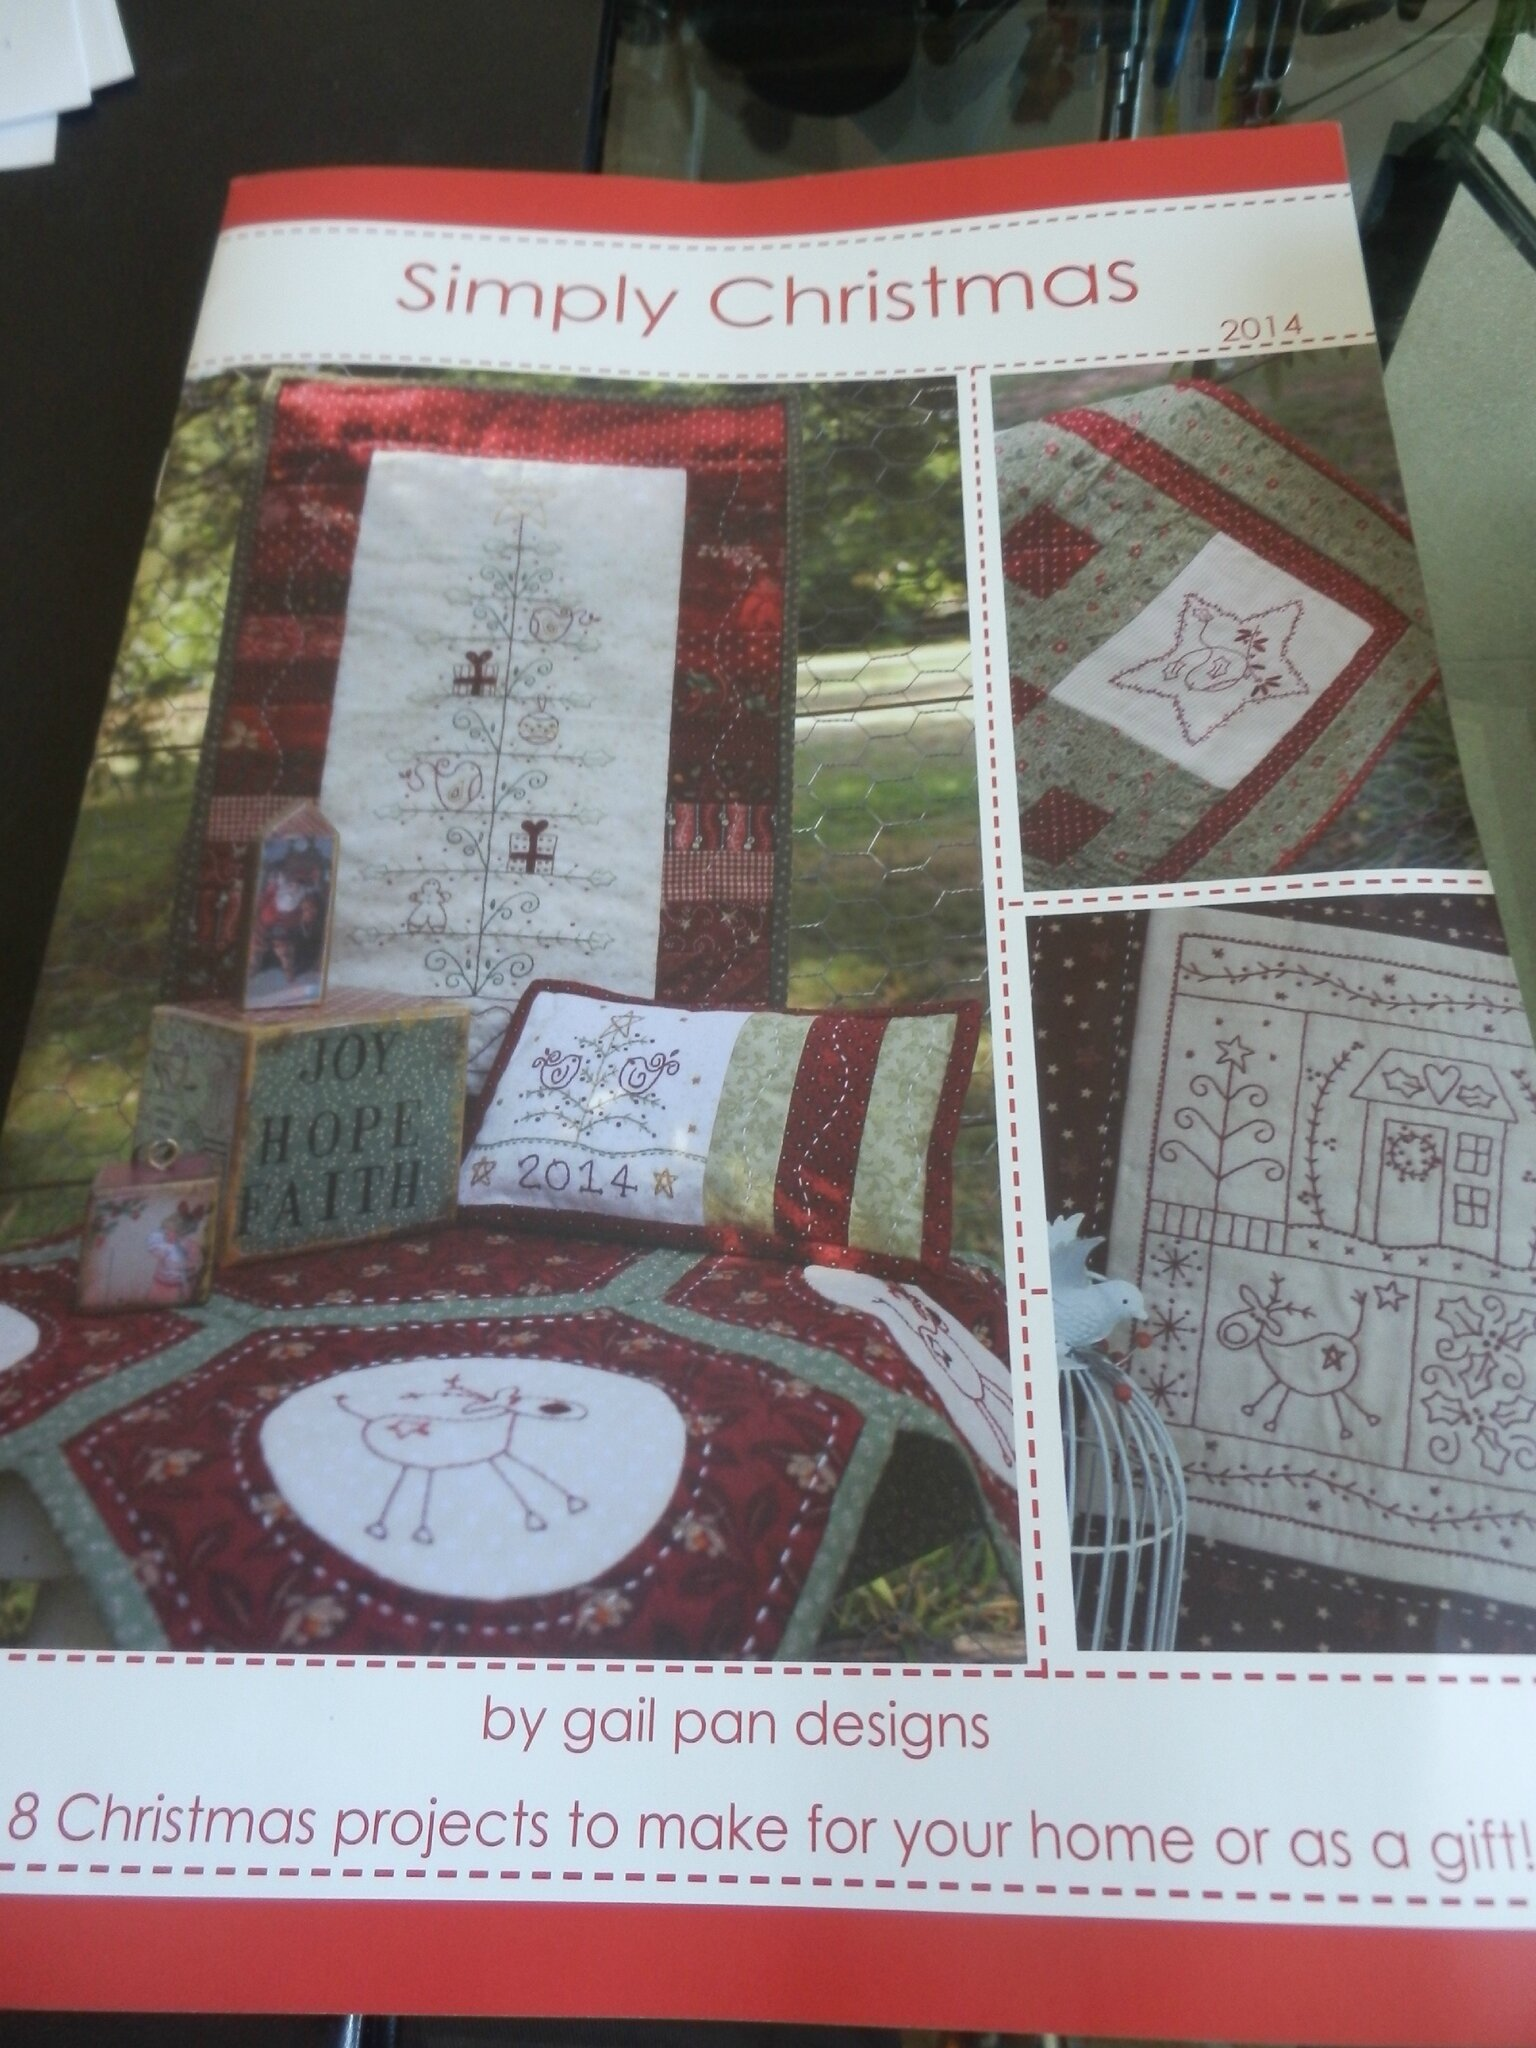 SIMPLY CHRISTMAS by Gail Pan